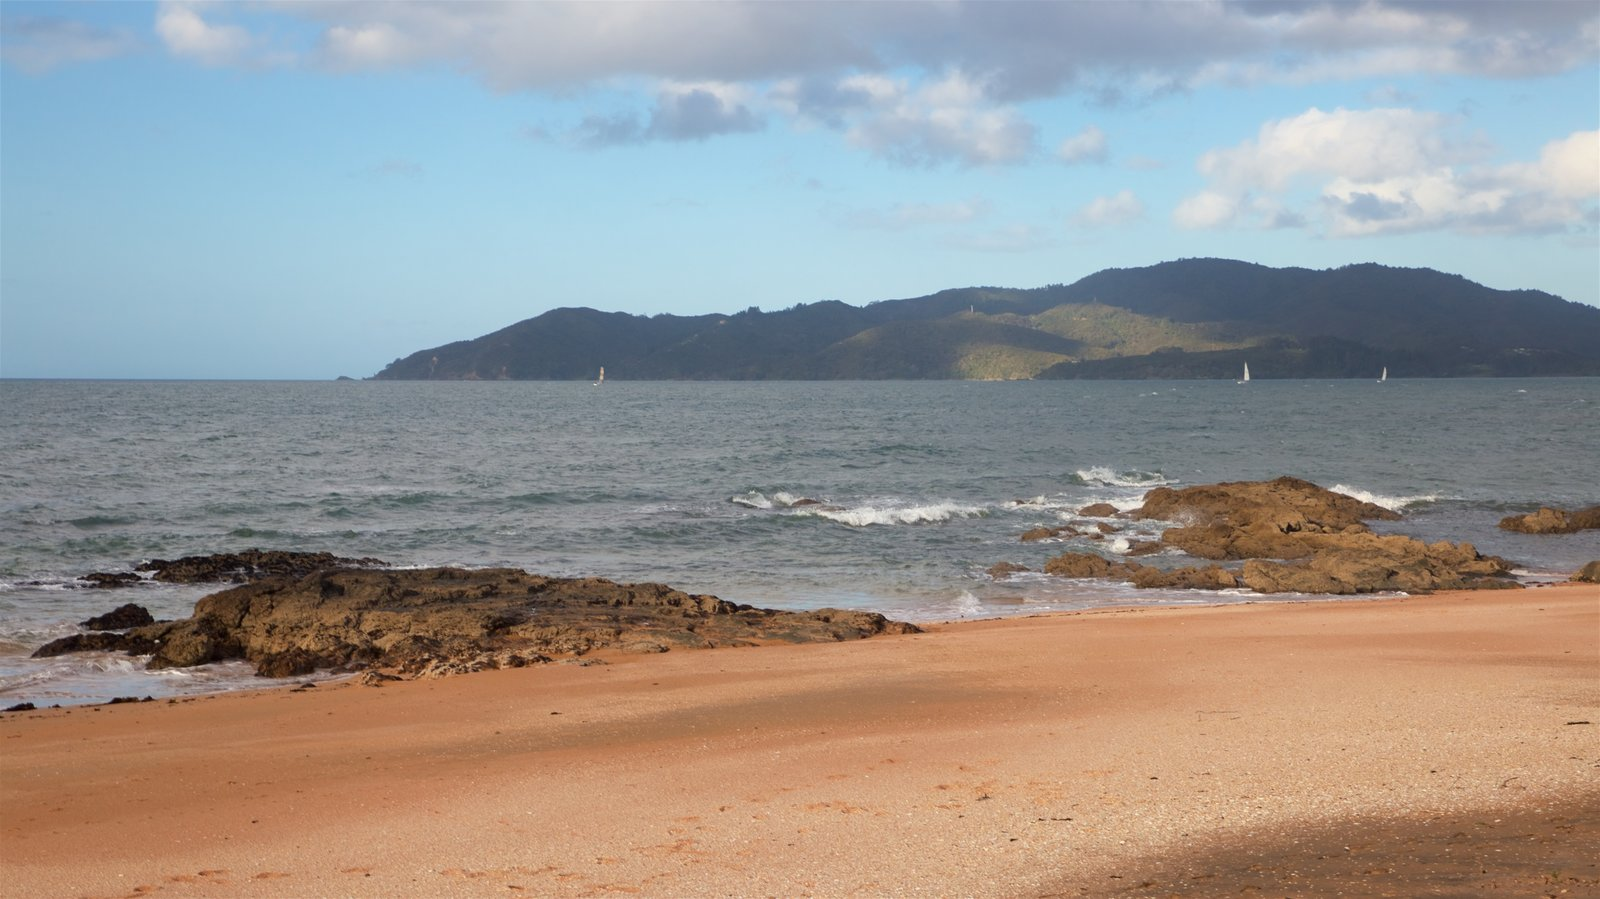 Cable Bay which includes rugged coastline, general coastal views and a beach